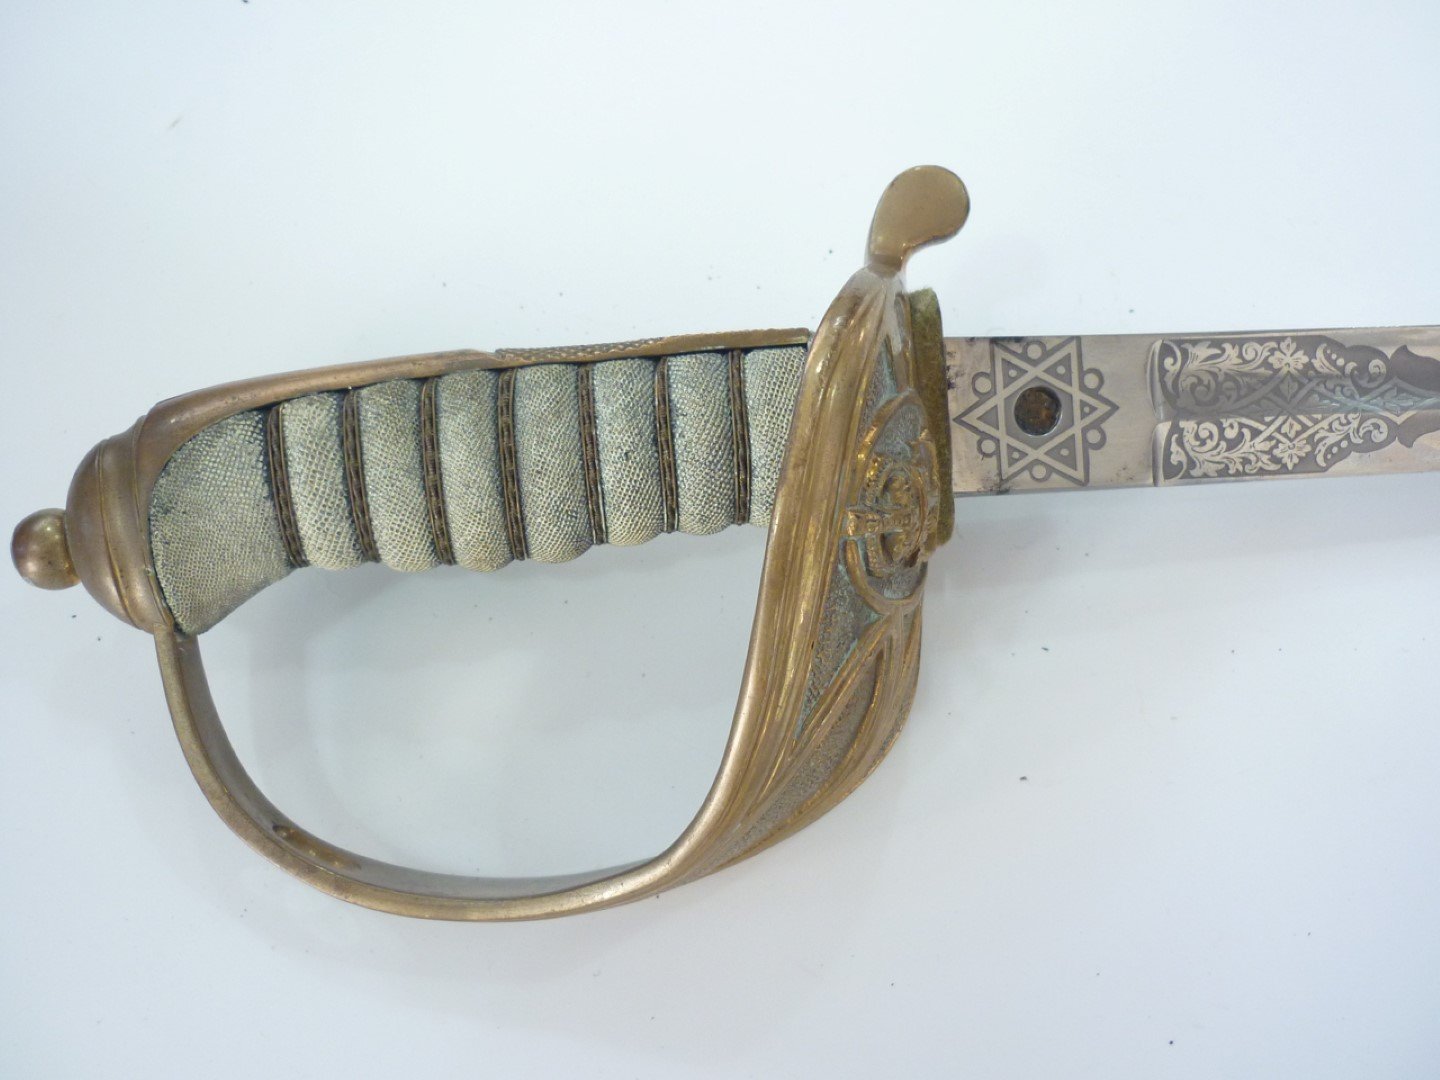 Lot 95 - An early 20th Century Royal Navy officer's sword by Goodman's Navy and Army Officers' Uniform